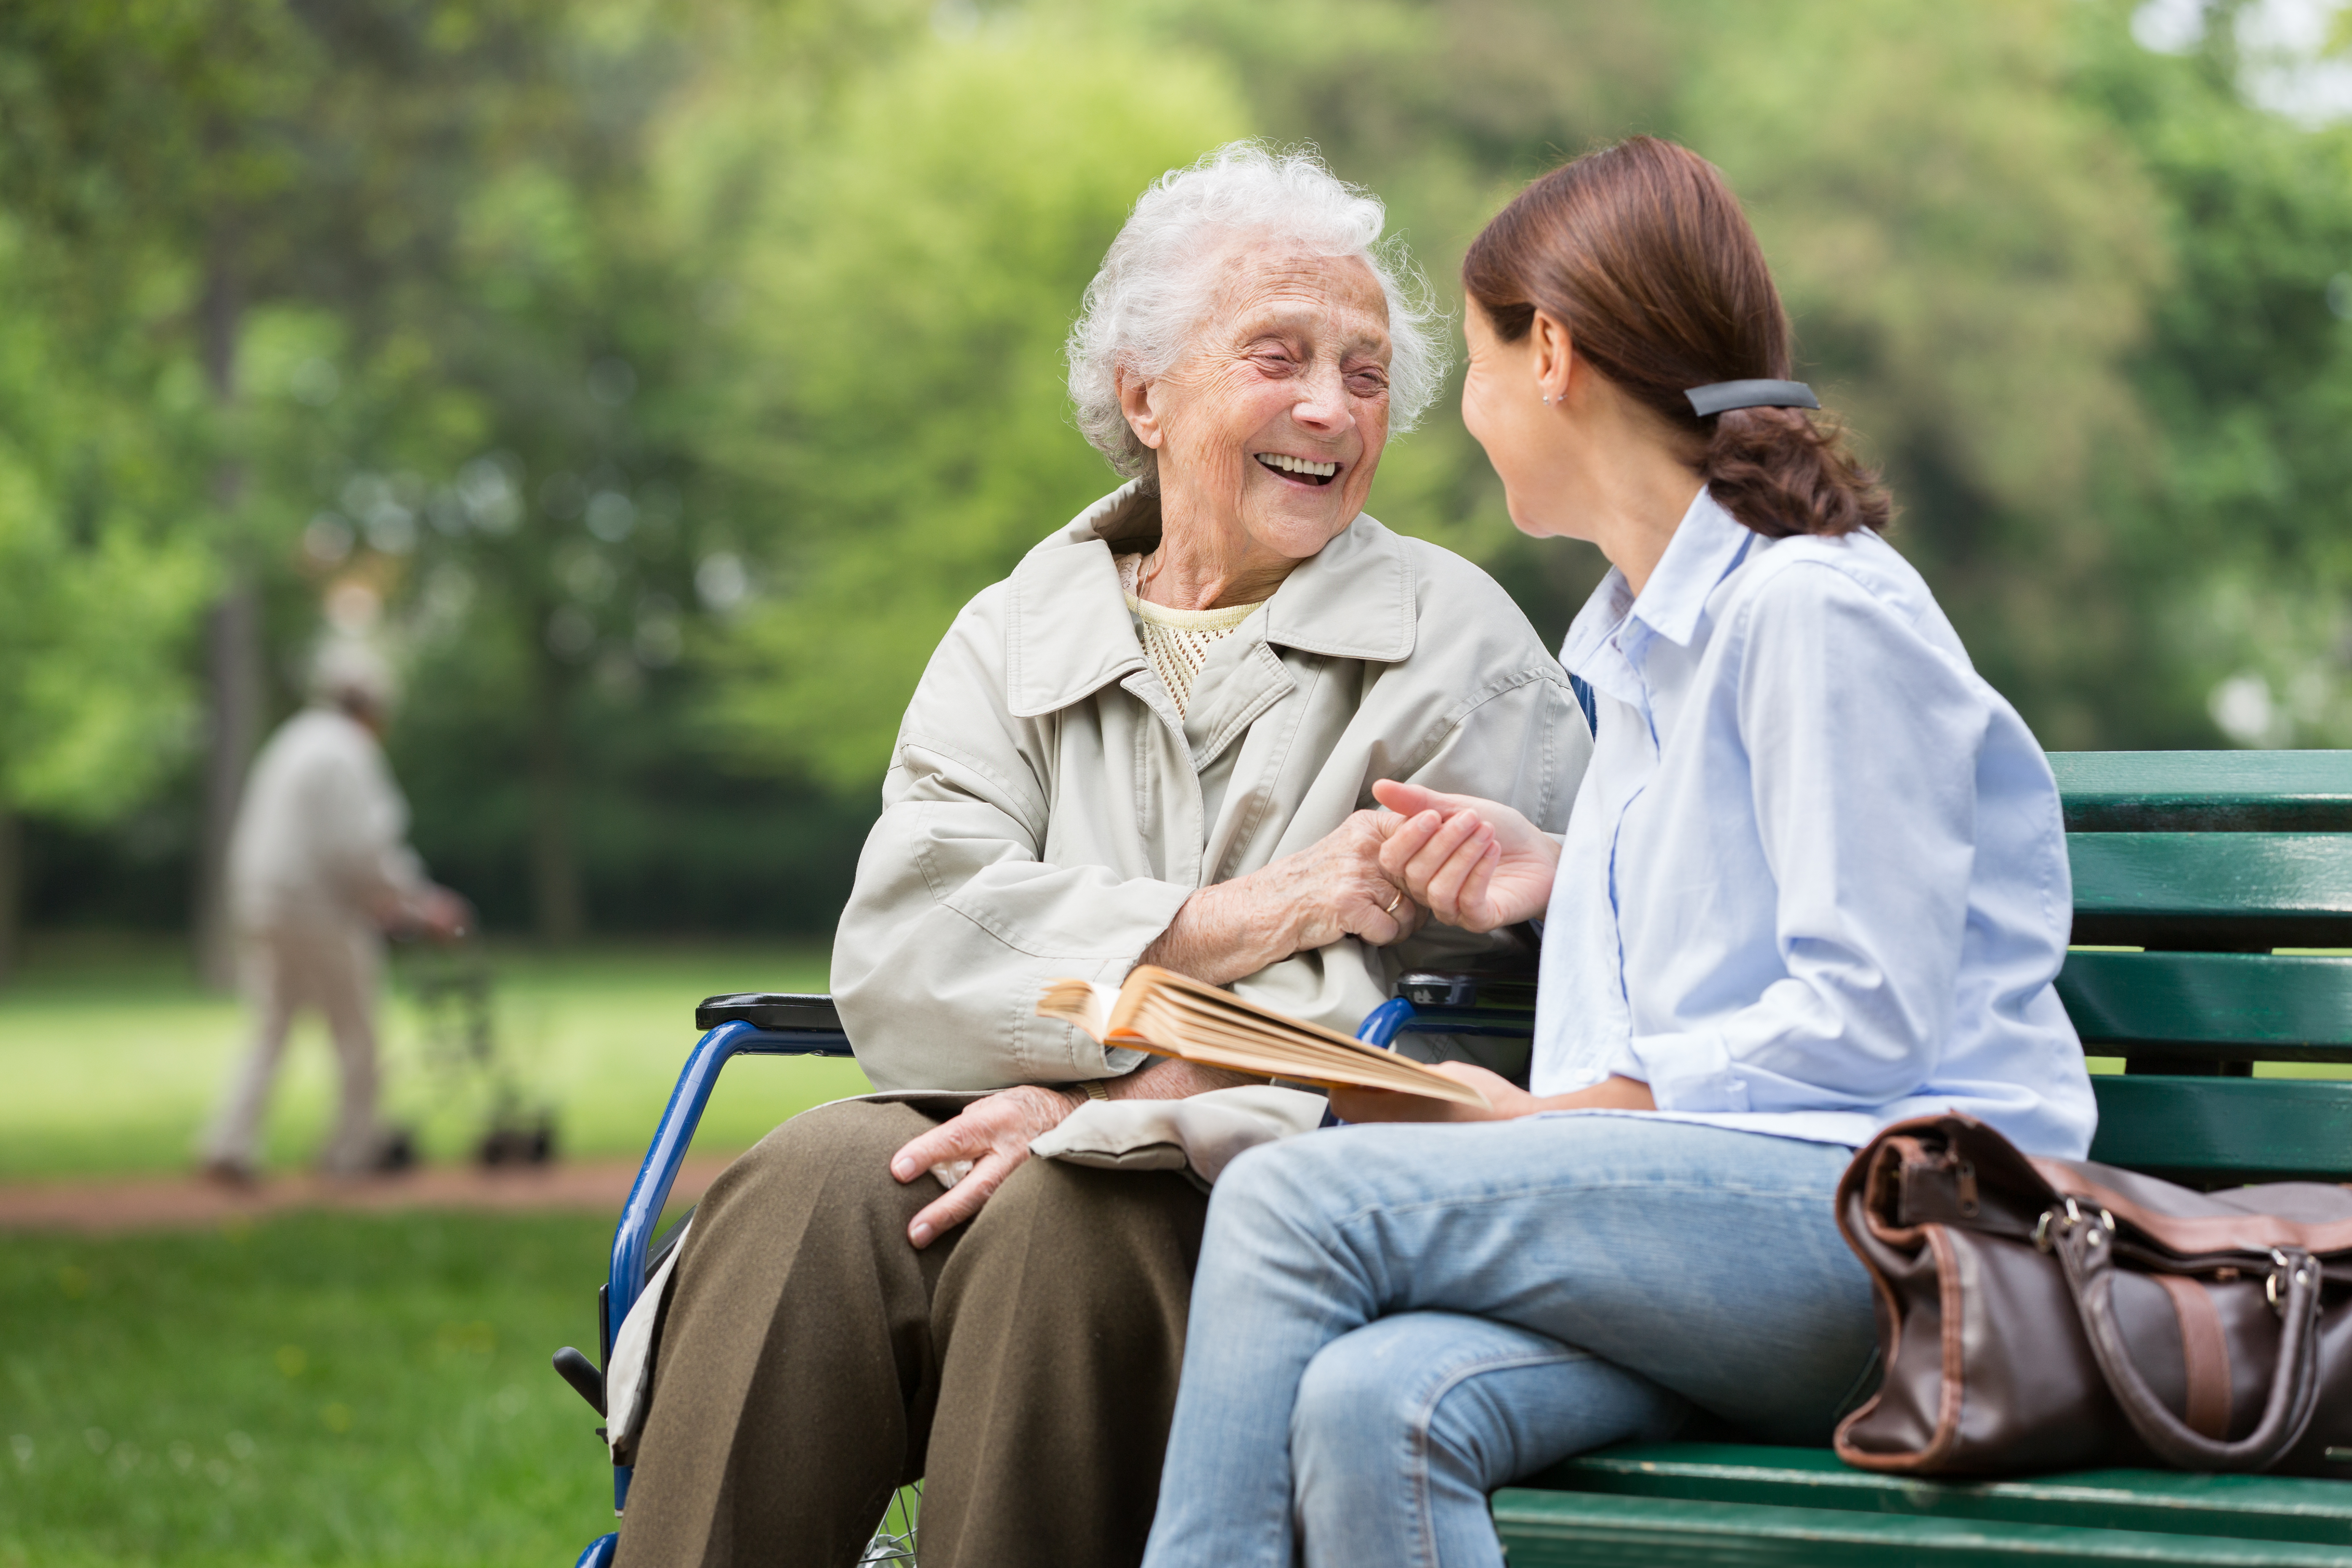 Senior woman with caregiver in the park